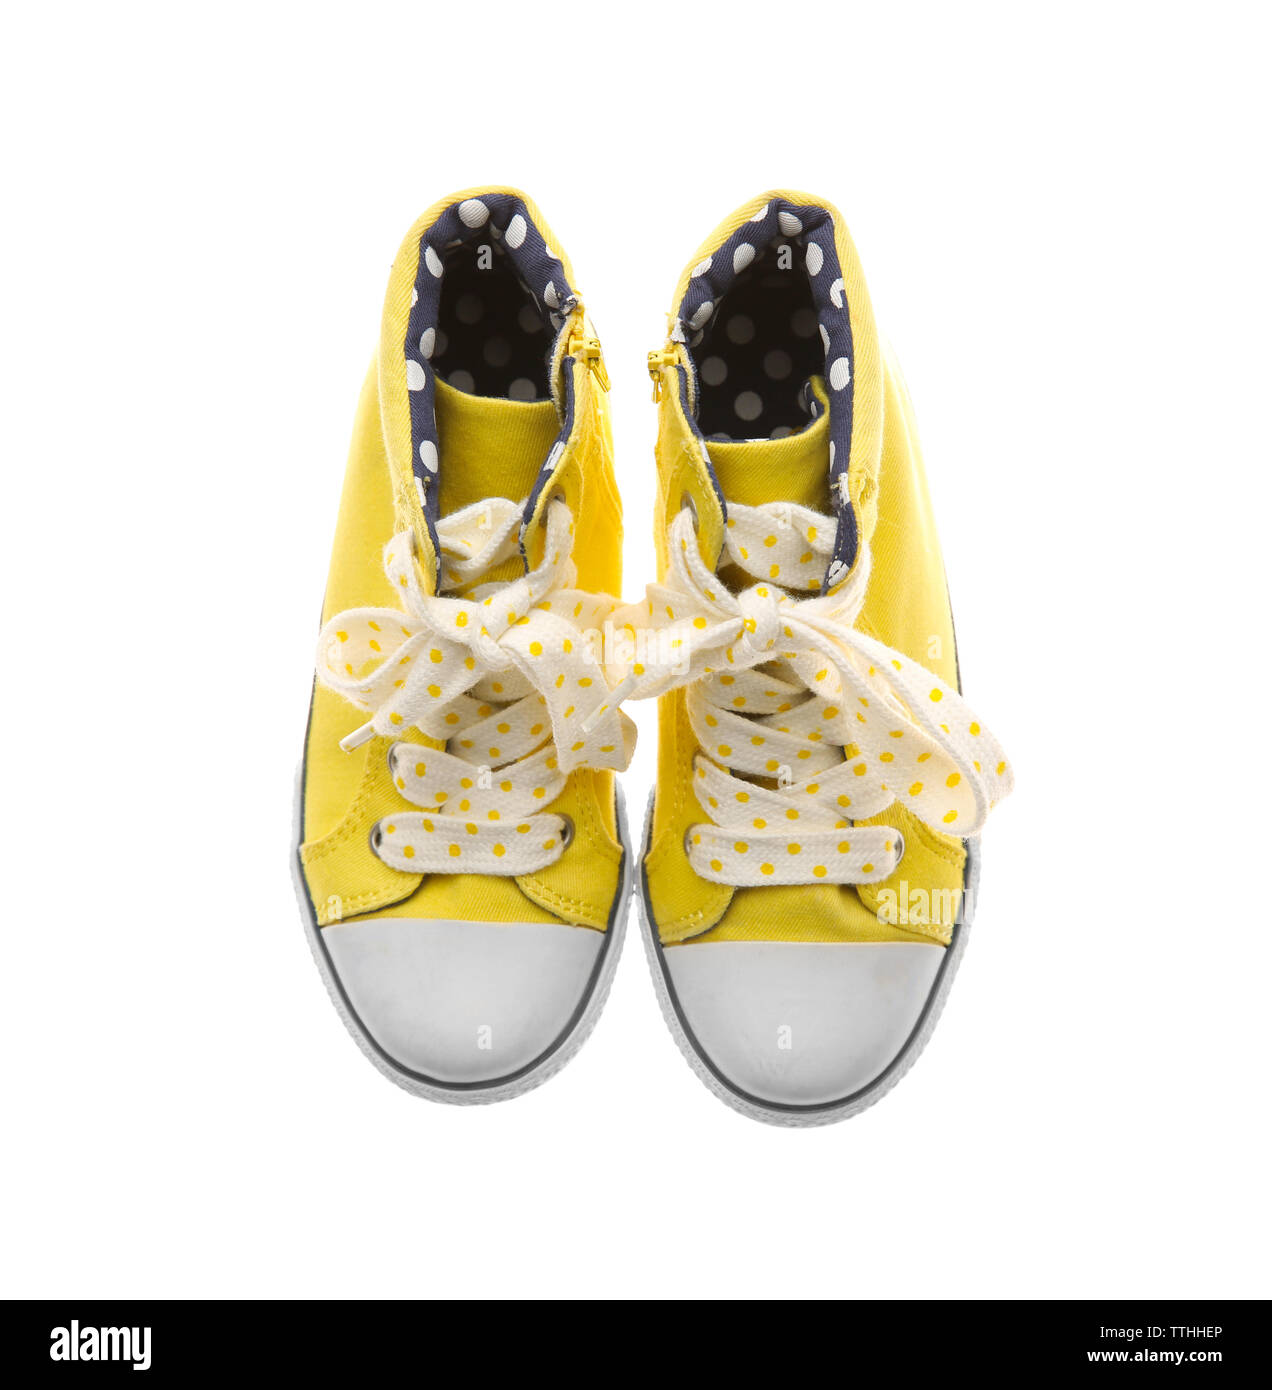 Yellow gumshoes for girls, isolated on white - Stock Image